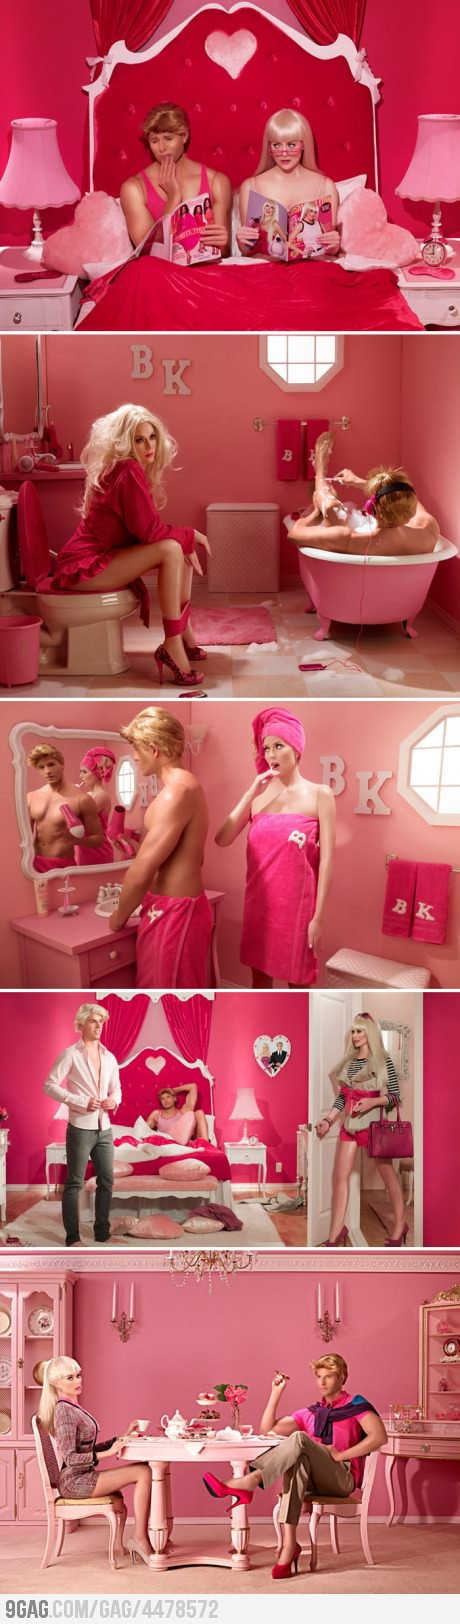 Barbie & Ken's marriage in real life